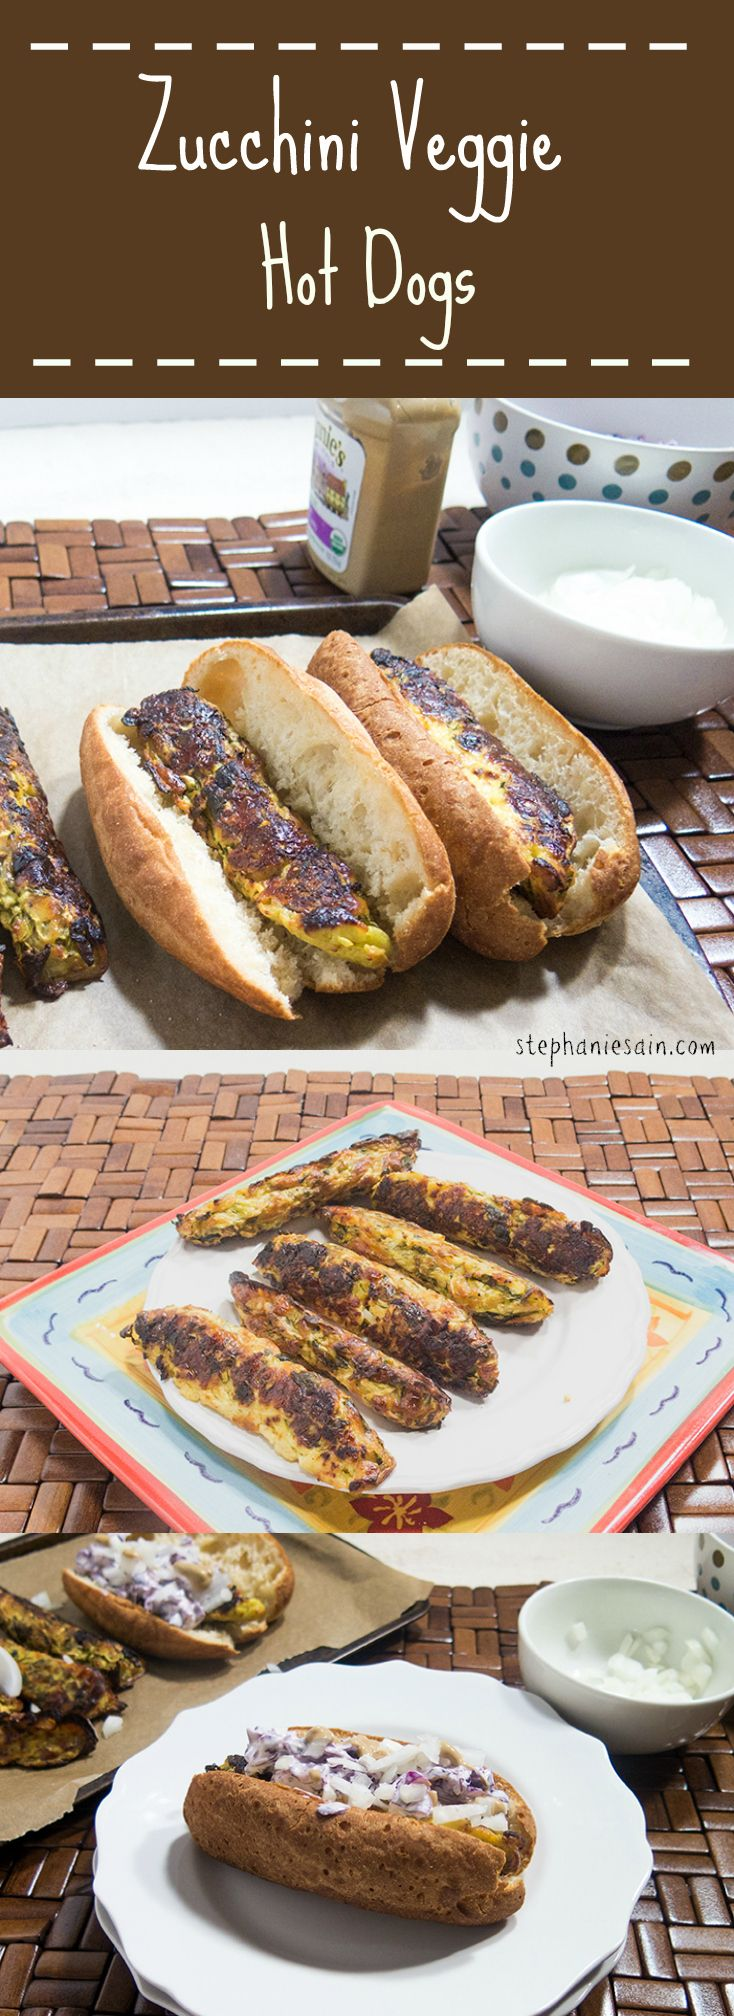 Zucchini Veggie Hot Dogs are a great tasting vegetarian, gluten free hot dog. Perfect with all your favorite toppings.